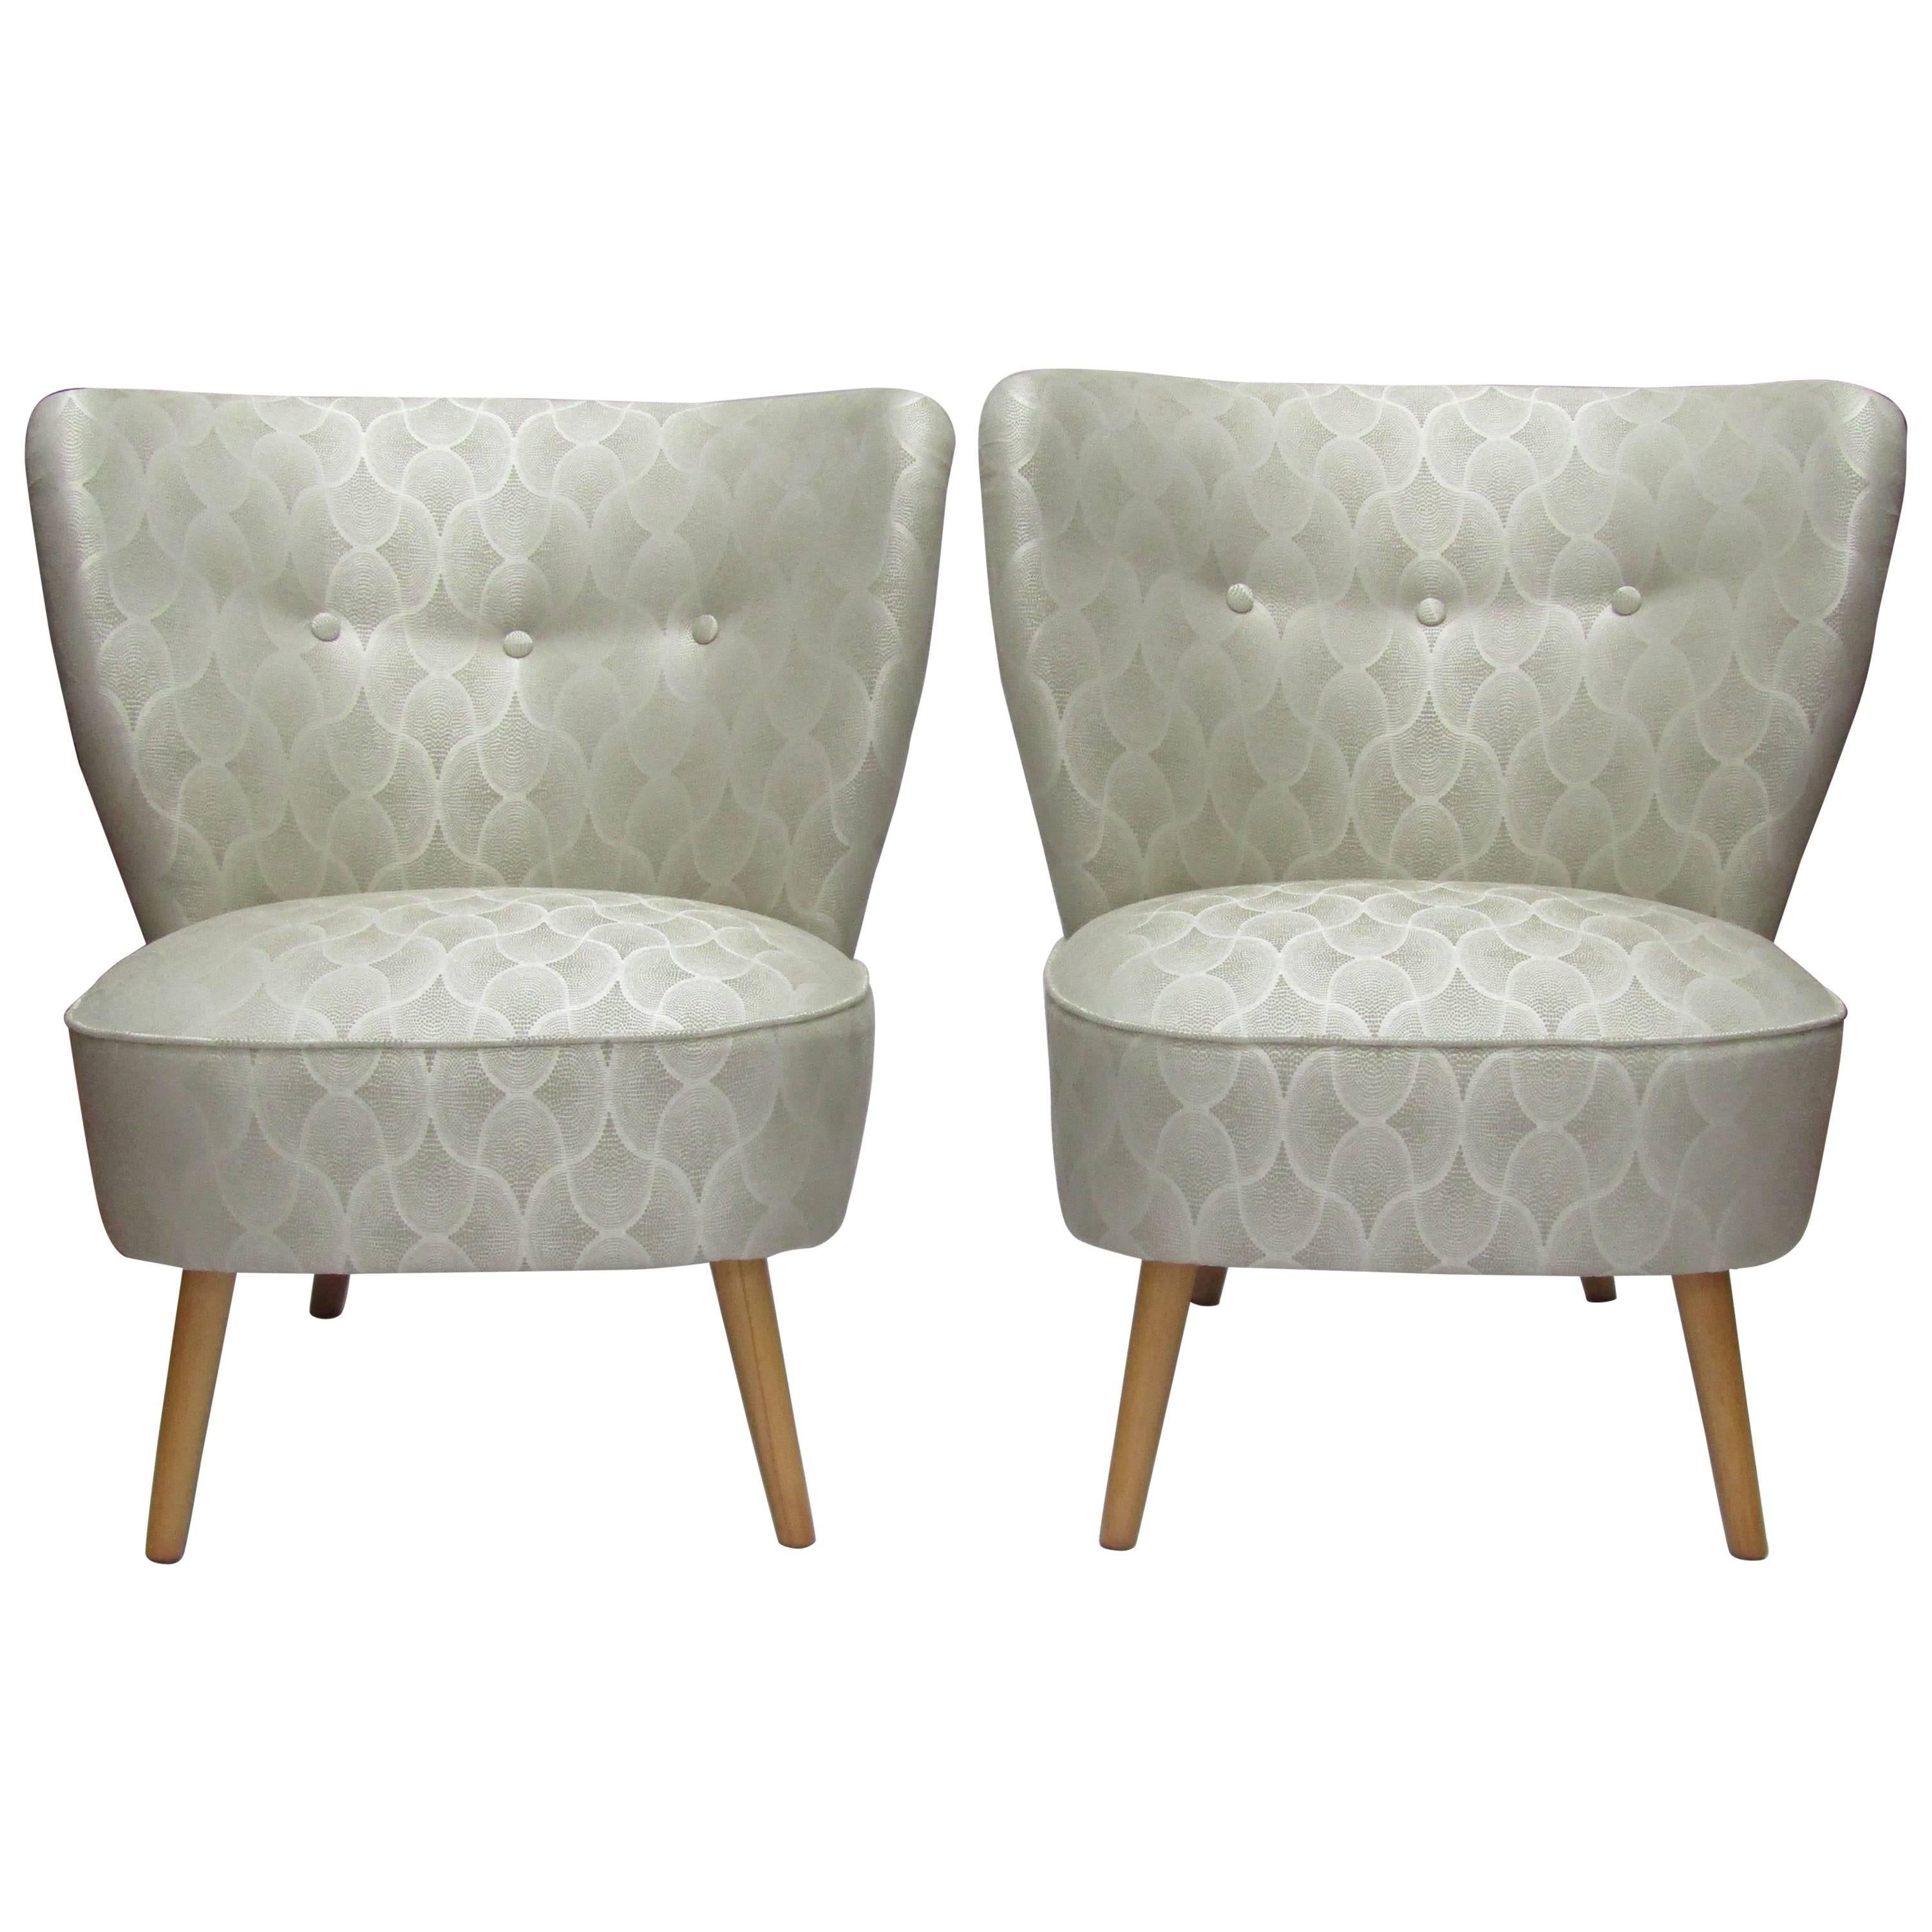 Pair Of 1950s Cocktail Chairs